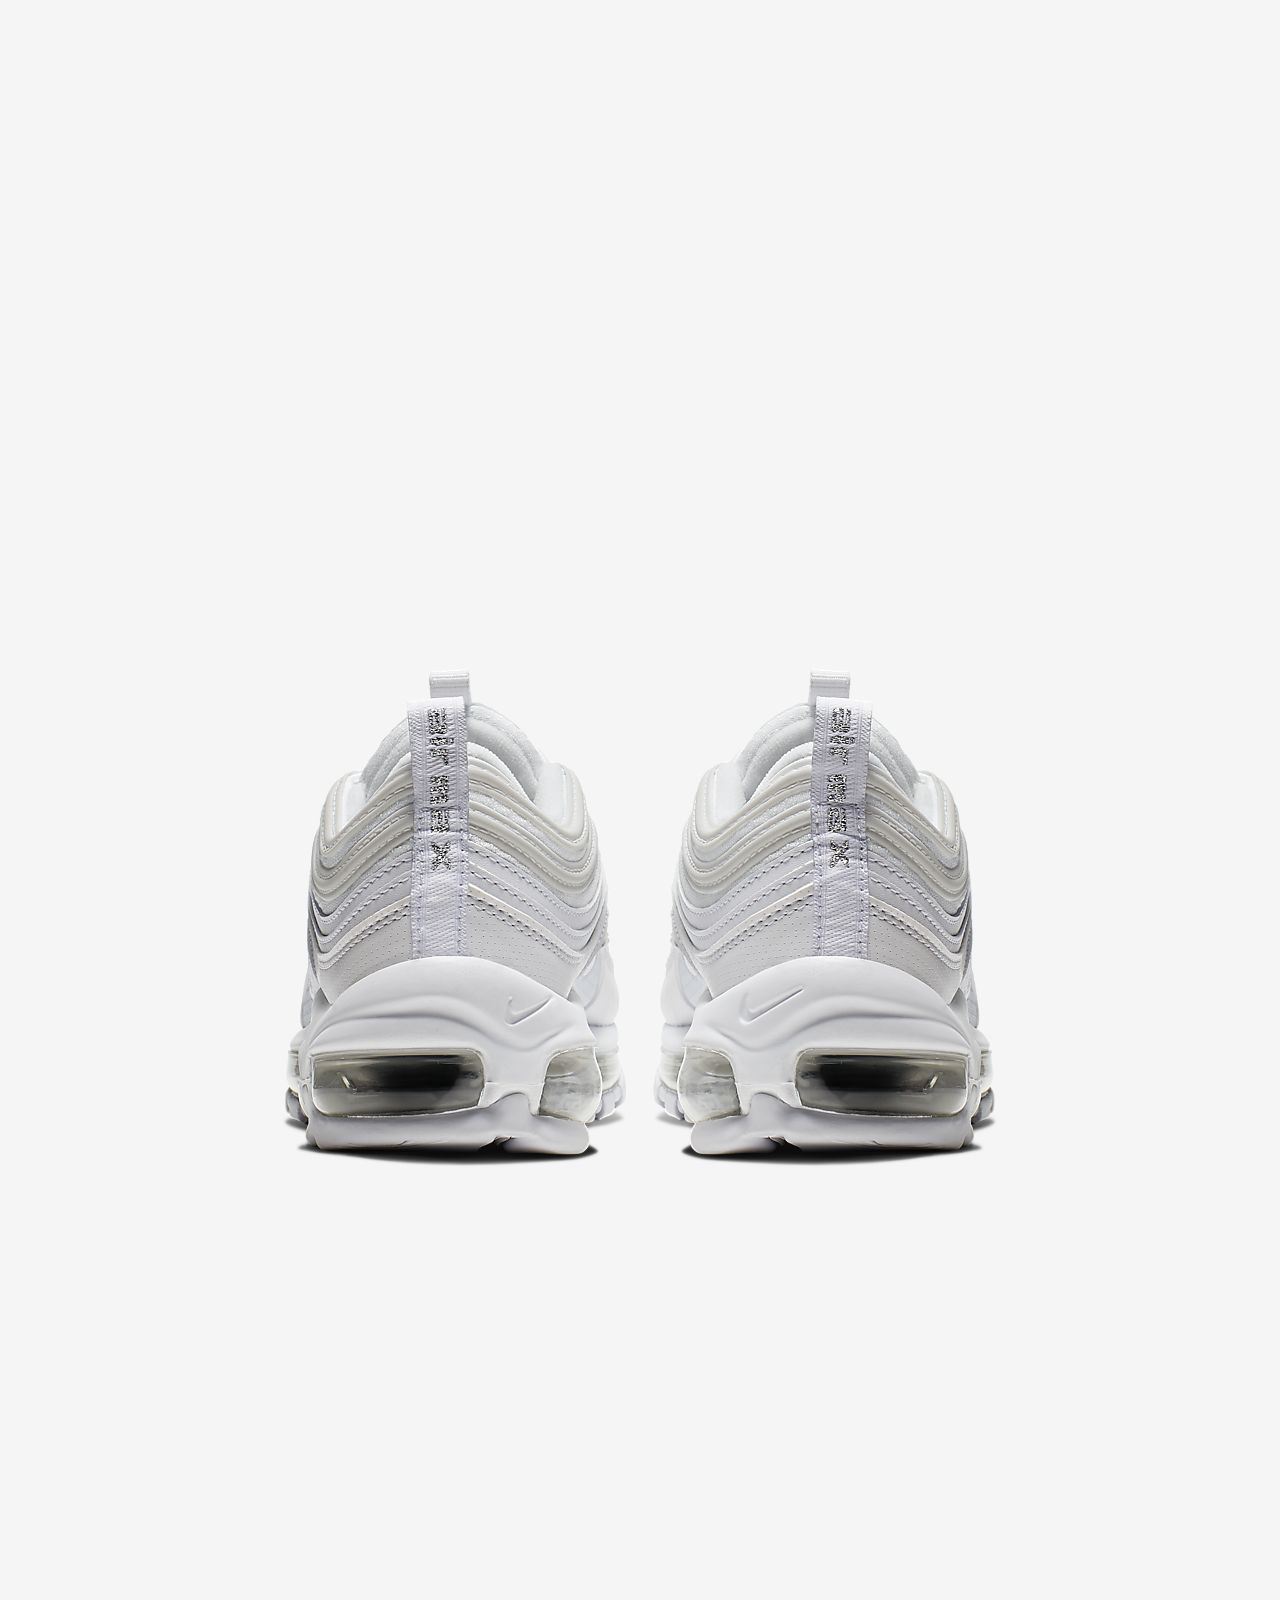 Details about NIKE AIR MAX 97 921522 104 TRIPLE WHITE SILVER YOUTH BOYS GIRLS ALL SIZE AM97 OG